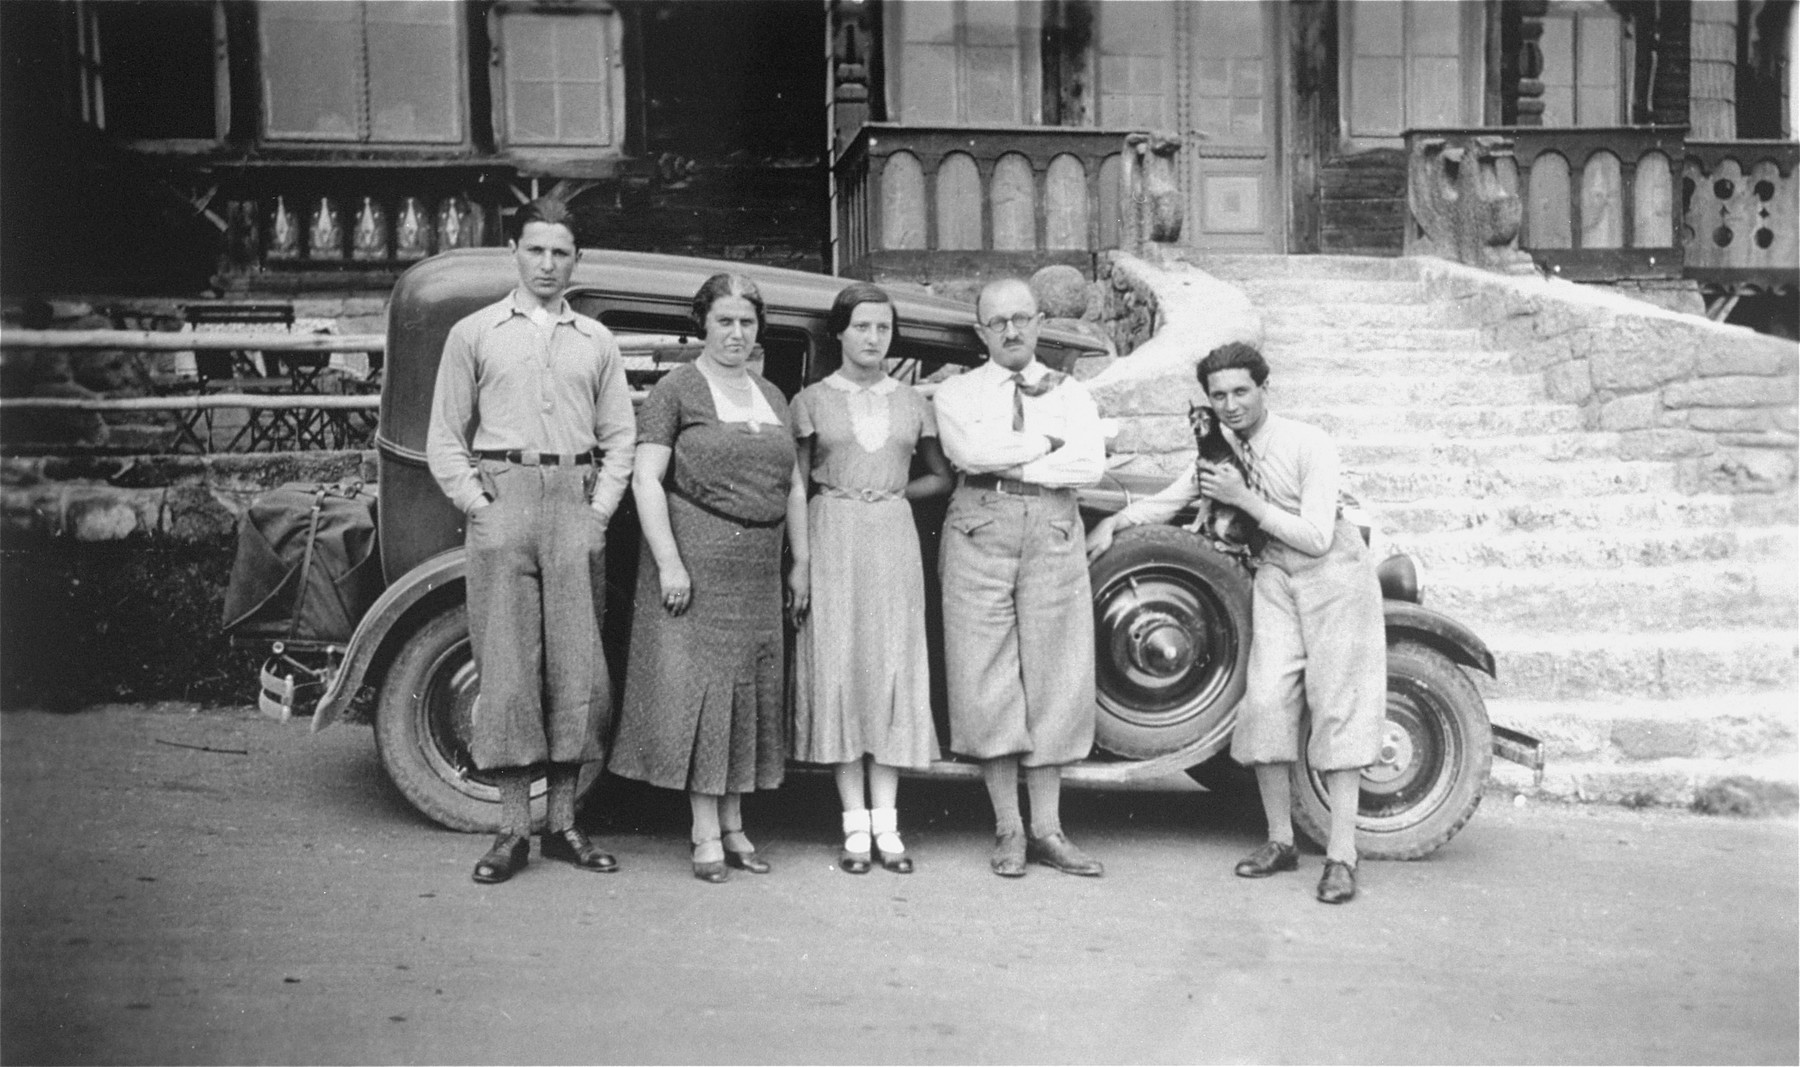 Portrait of the Kohn family from Prague on vacation in Italy.    Standing from left to right are: Erich (b. 1913); his mother, Emilia; Ruth (b. 1916), their father, Viktor; and Walter (b. 1910).